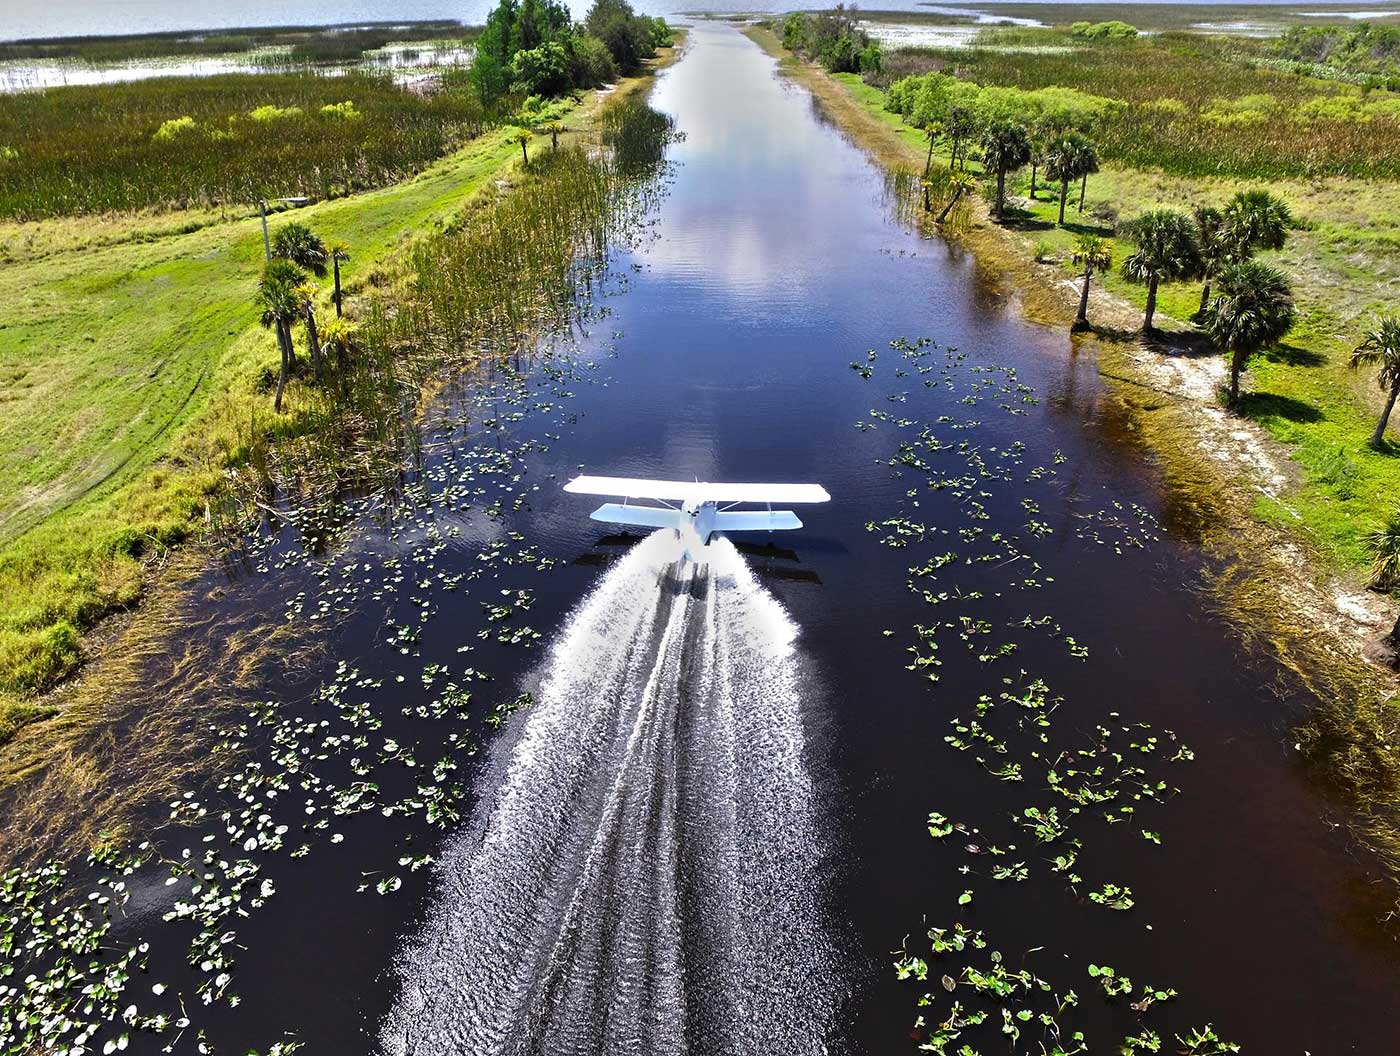 Taking off from a canal